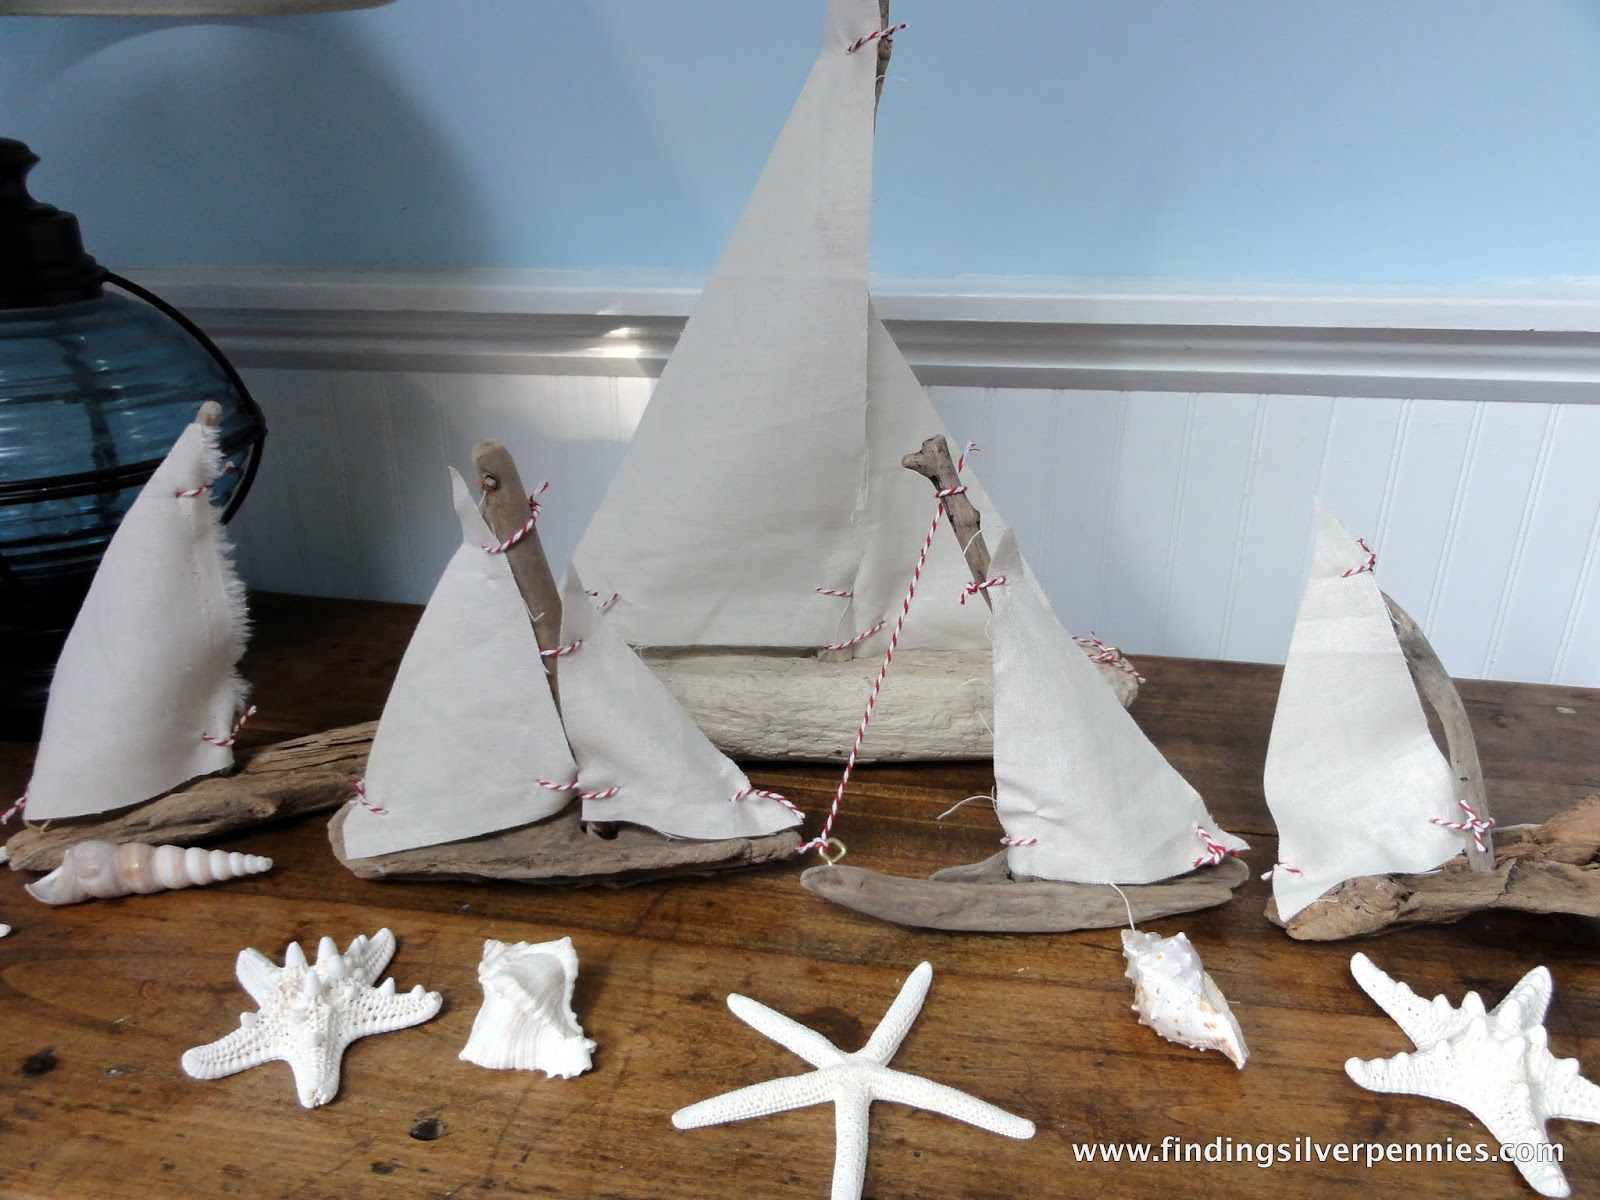 my pass it on gifts driftwood sailboats finding silver pennies